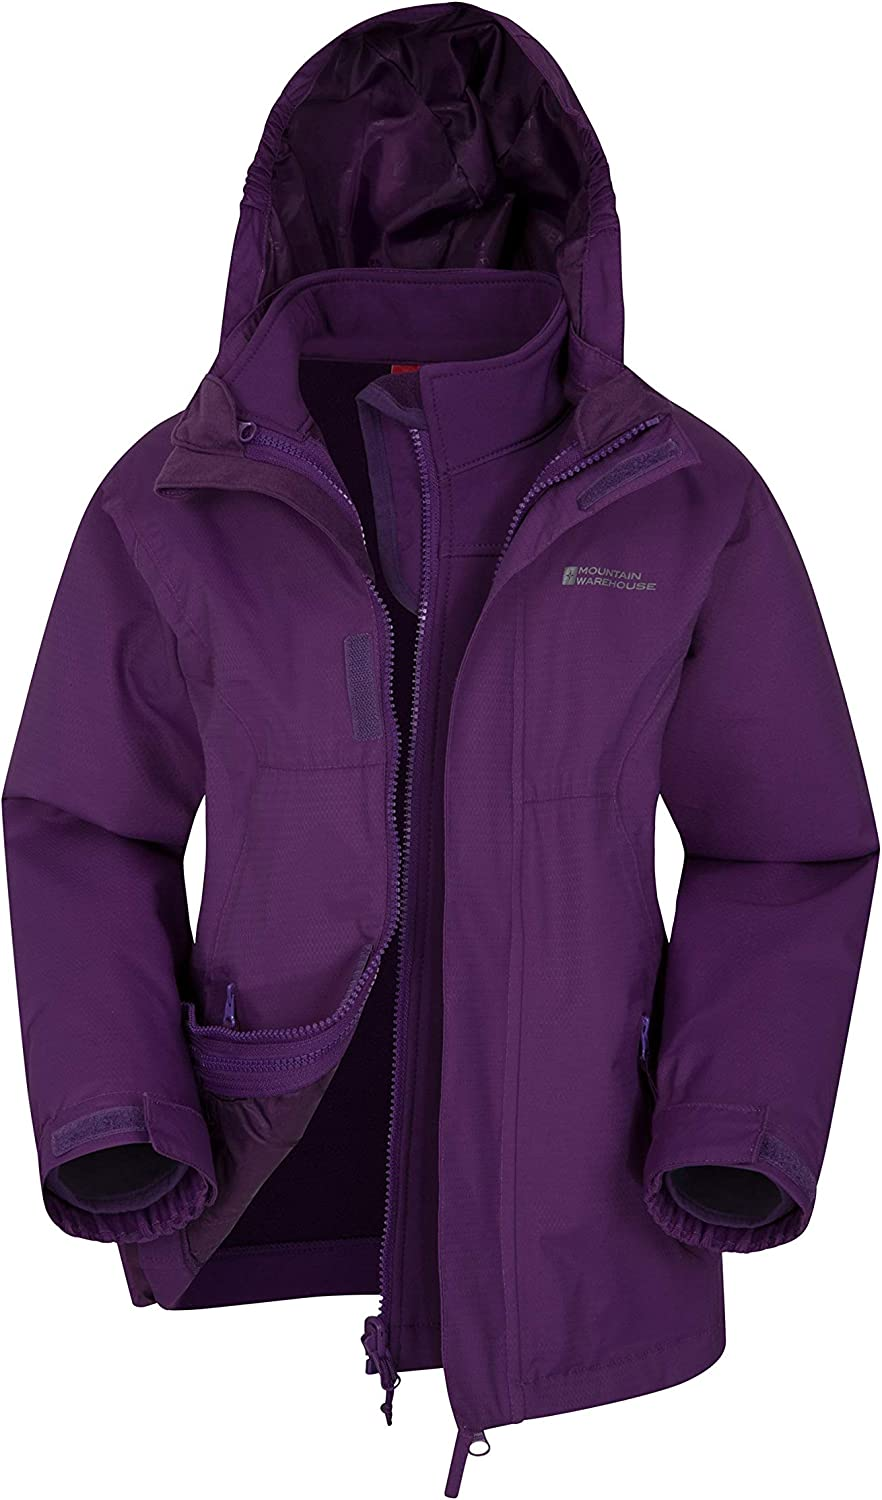 Mountain Warehouse Bracken 3 in 1 Kids Waterproof Jacket - Triclimate